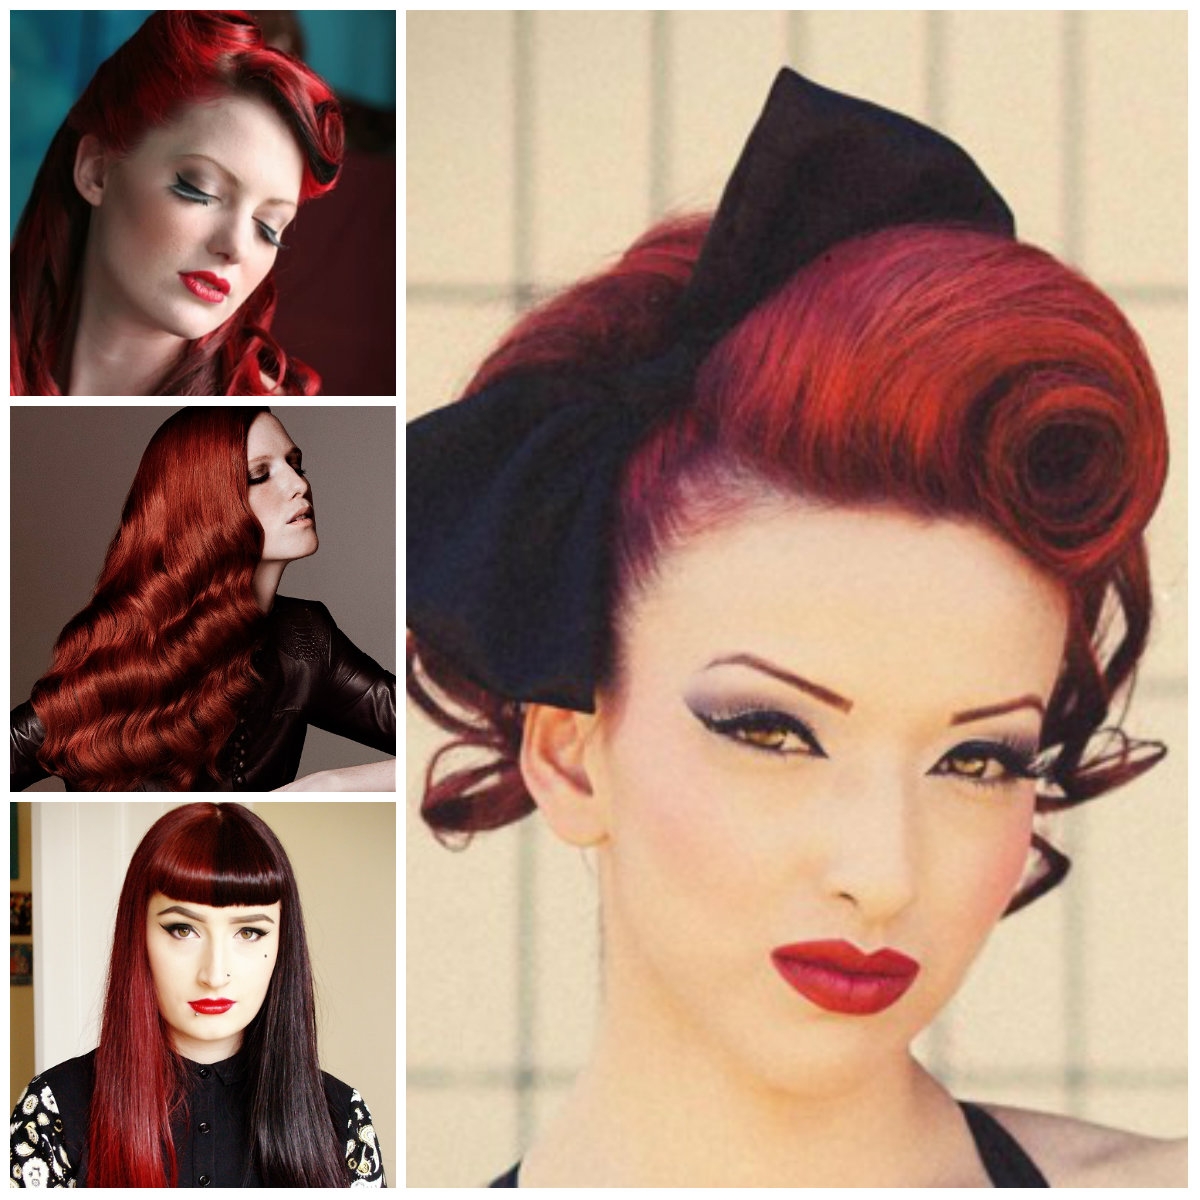 long retro hairstyles on red hair | 2019 haircuts, hairstyles and